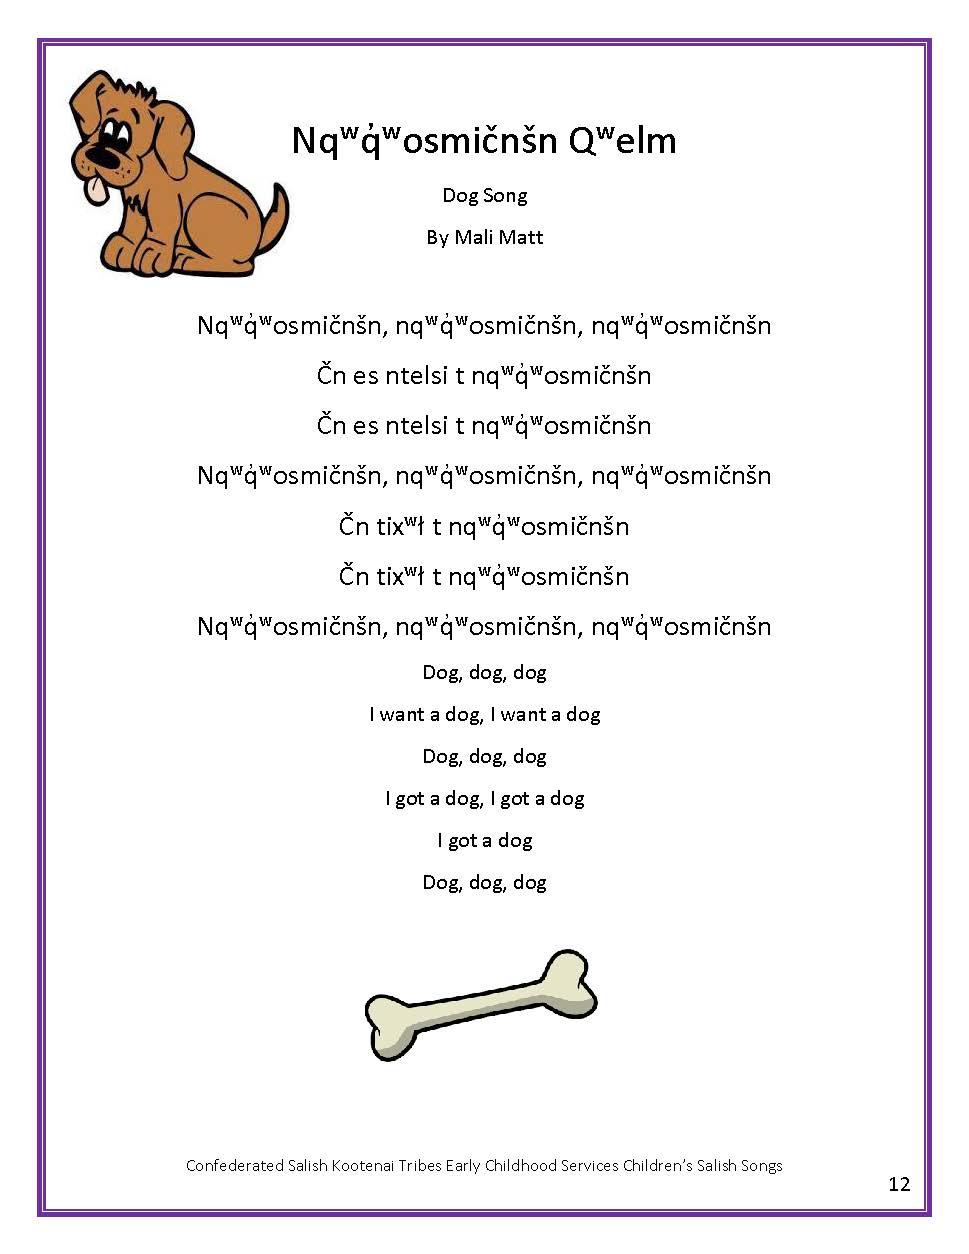 ECS Childrens Salish Song Book Page 17